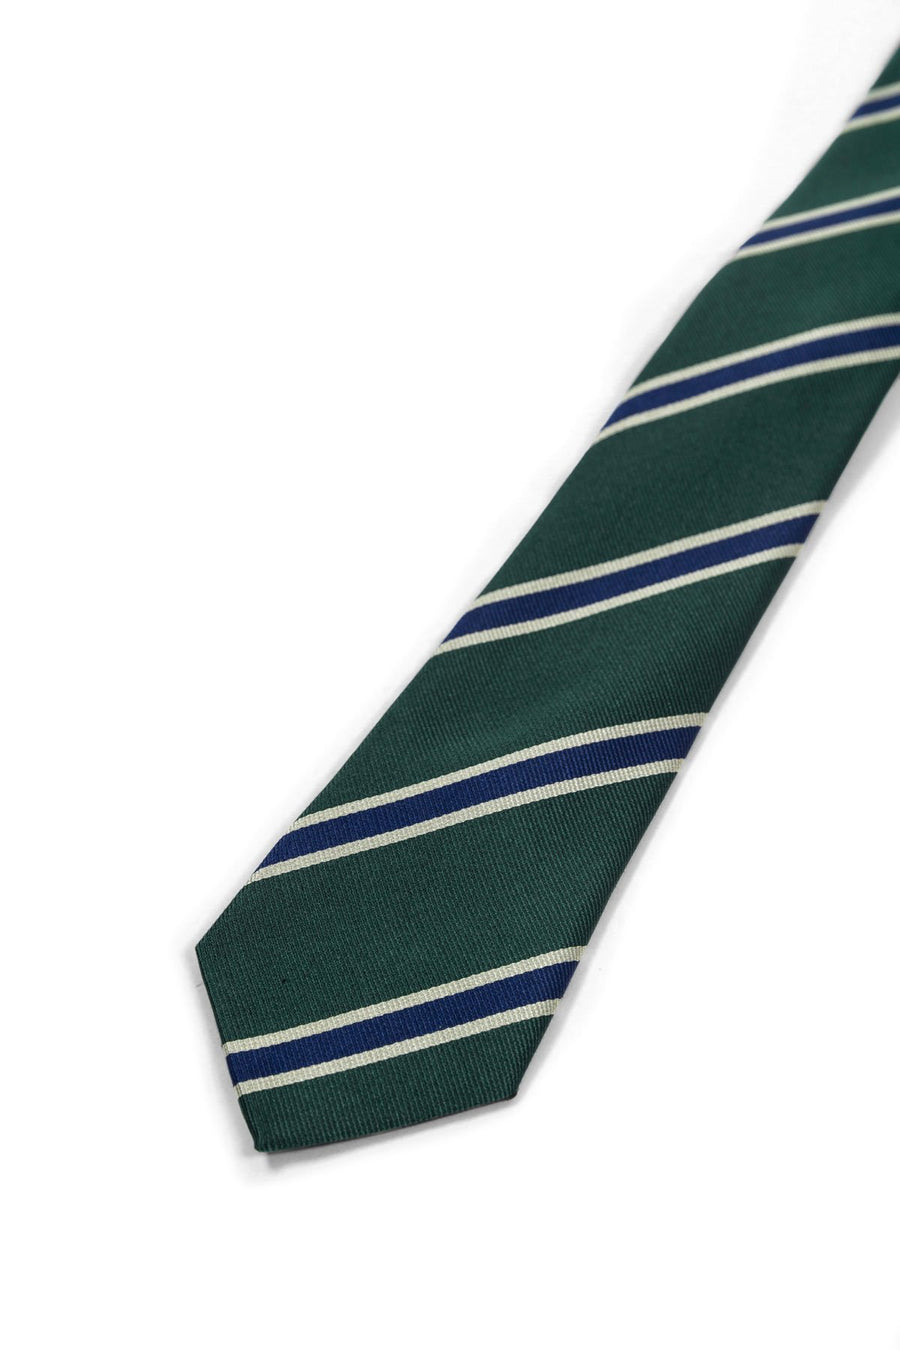 The Green Striped Preppy Silk